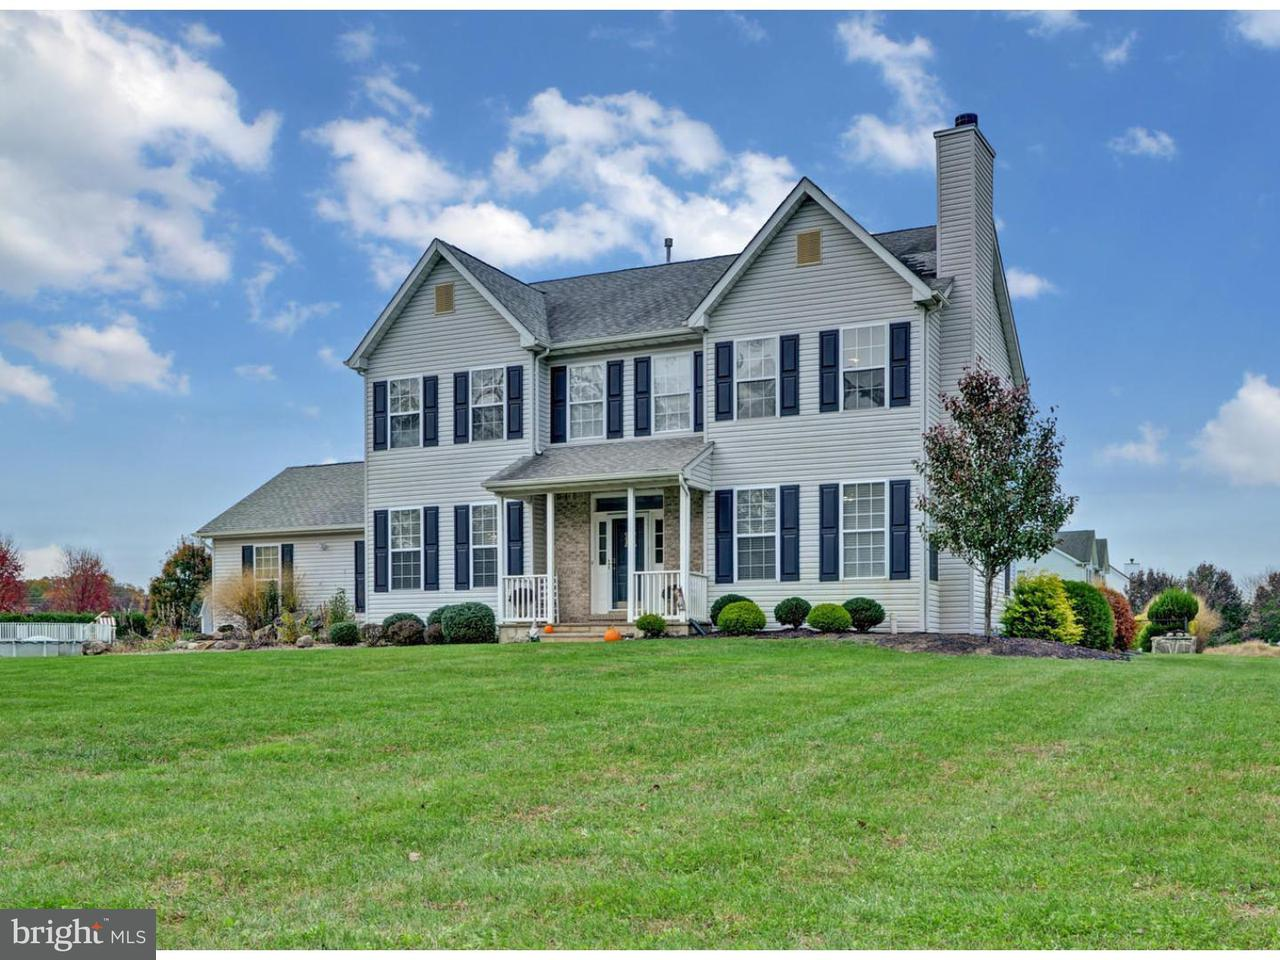 Single Family Home for Sale at 19 HUCKLEBERRY Lane New Egypt, New Jersey 08533 United States